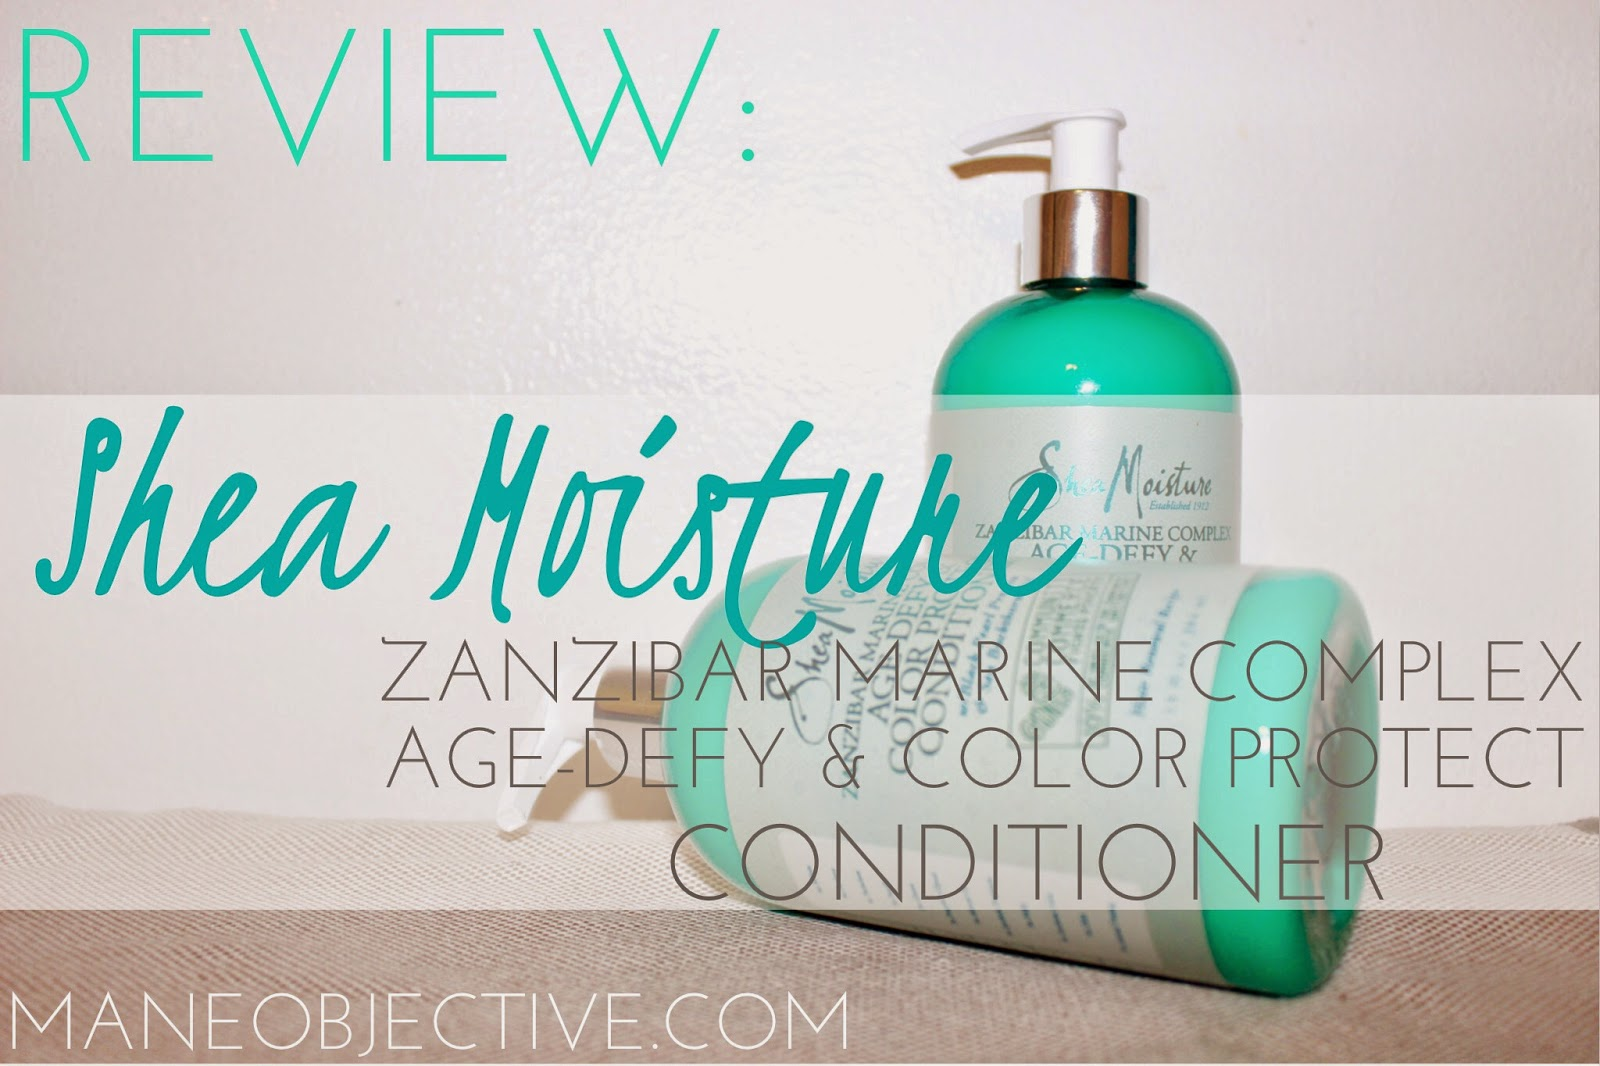 Shea Moisture Zanzibar Marine Complex Age-Defy & Color Protect Conditioner